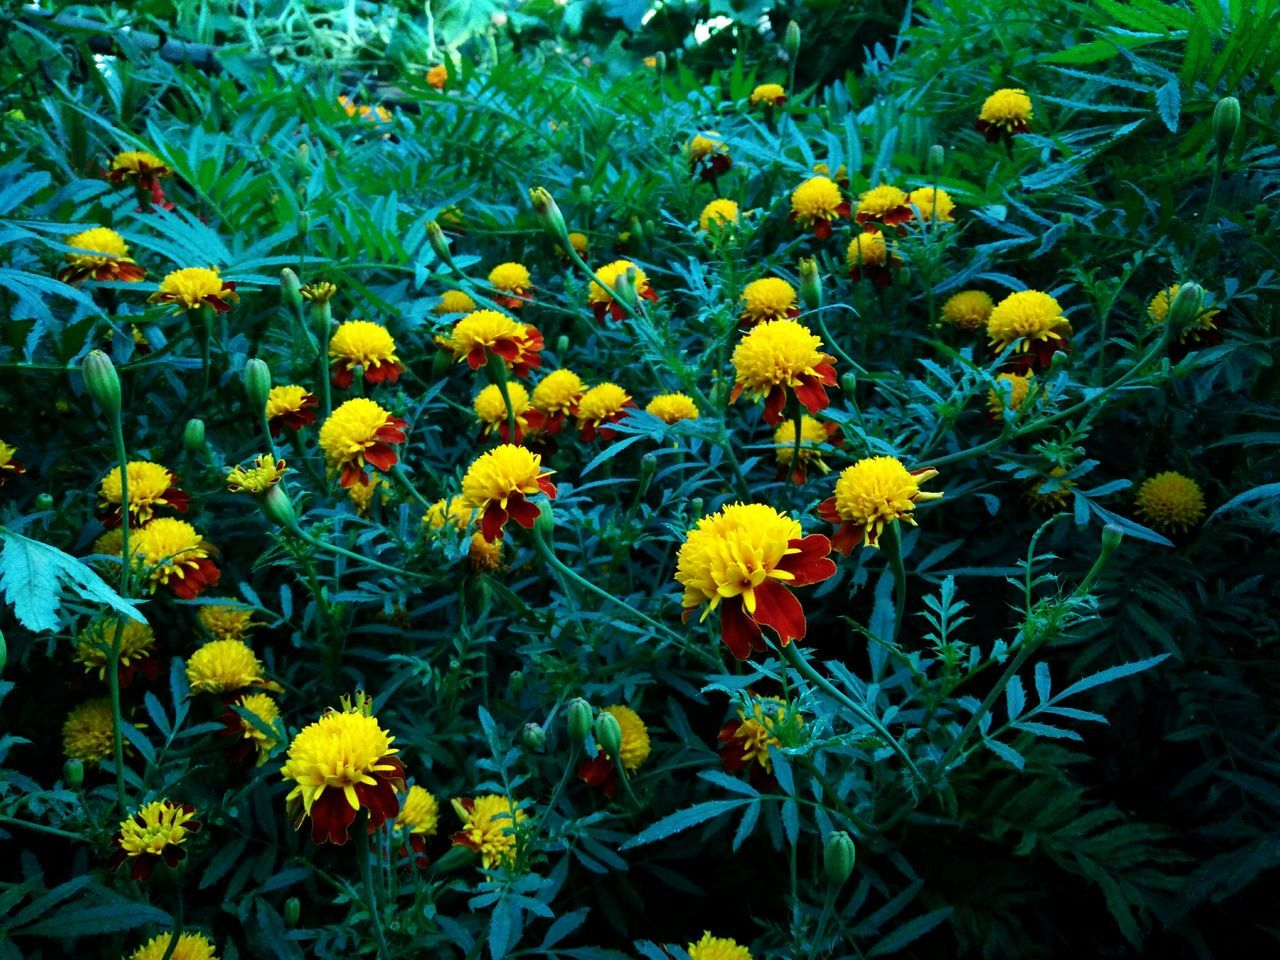 Marigold Marigold Flower Yellow Beauty In Nature Outdoors No People Green Color Freshness Plant